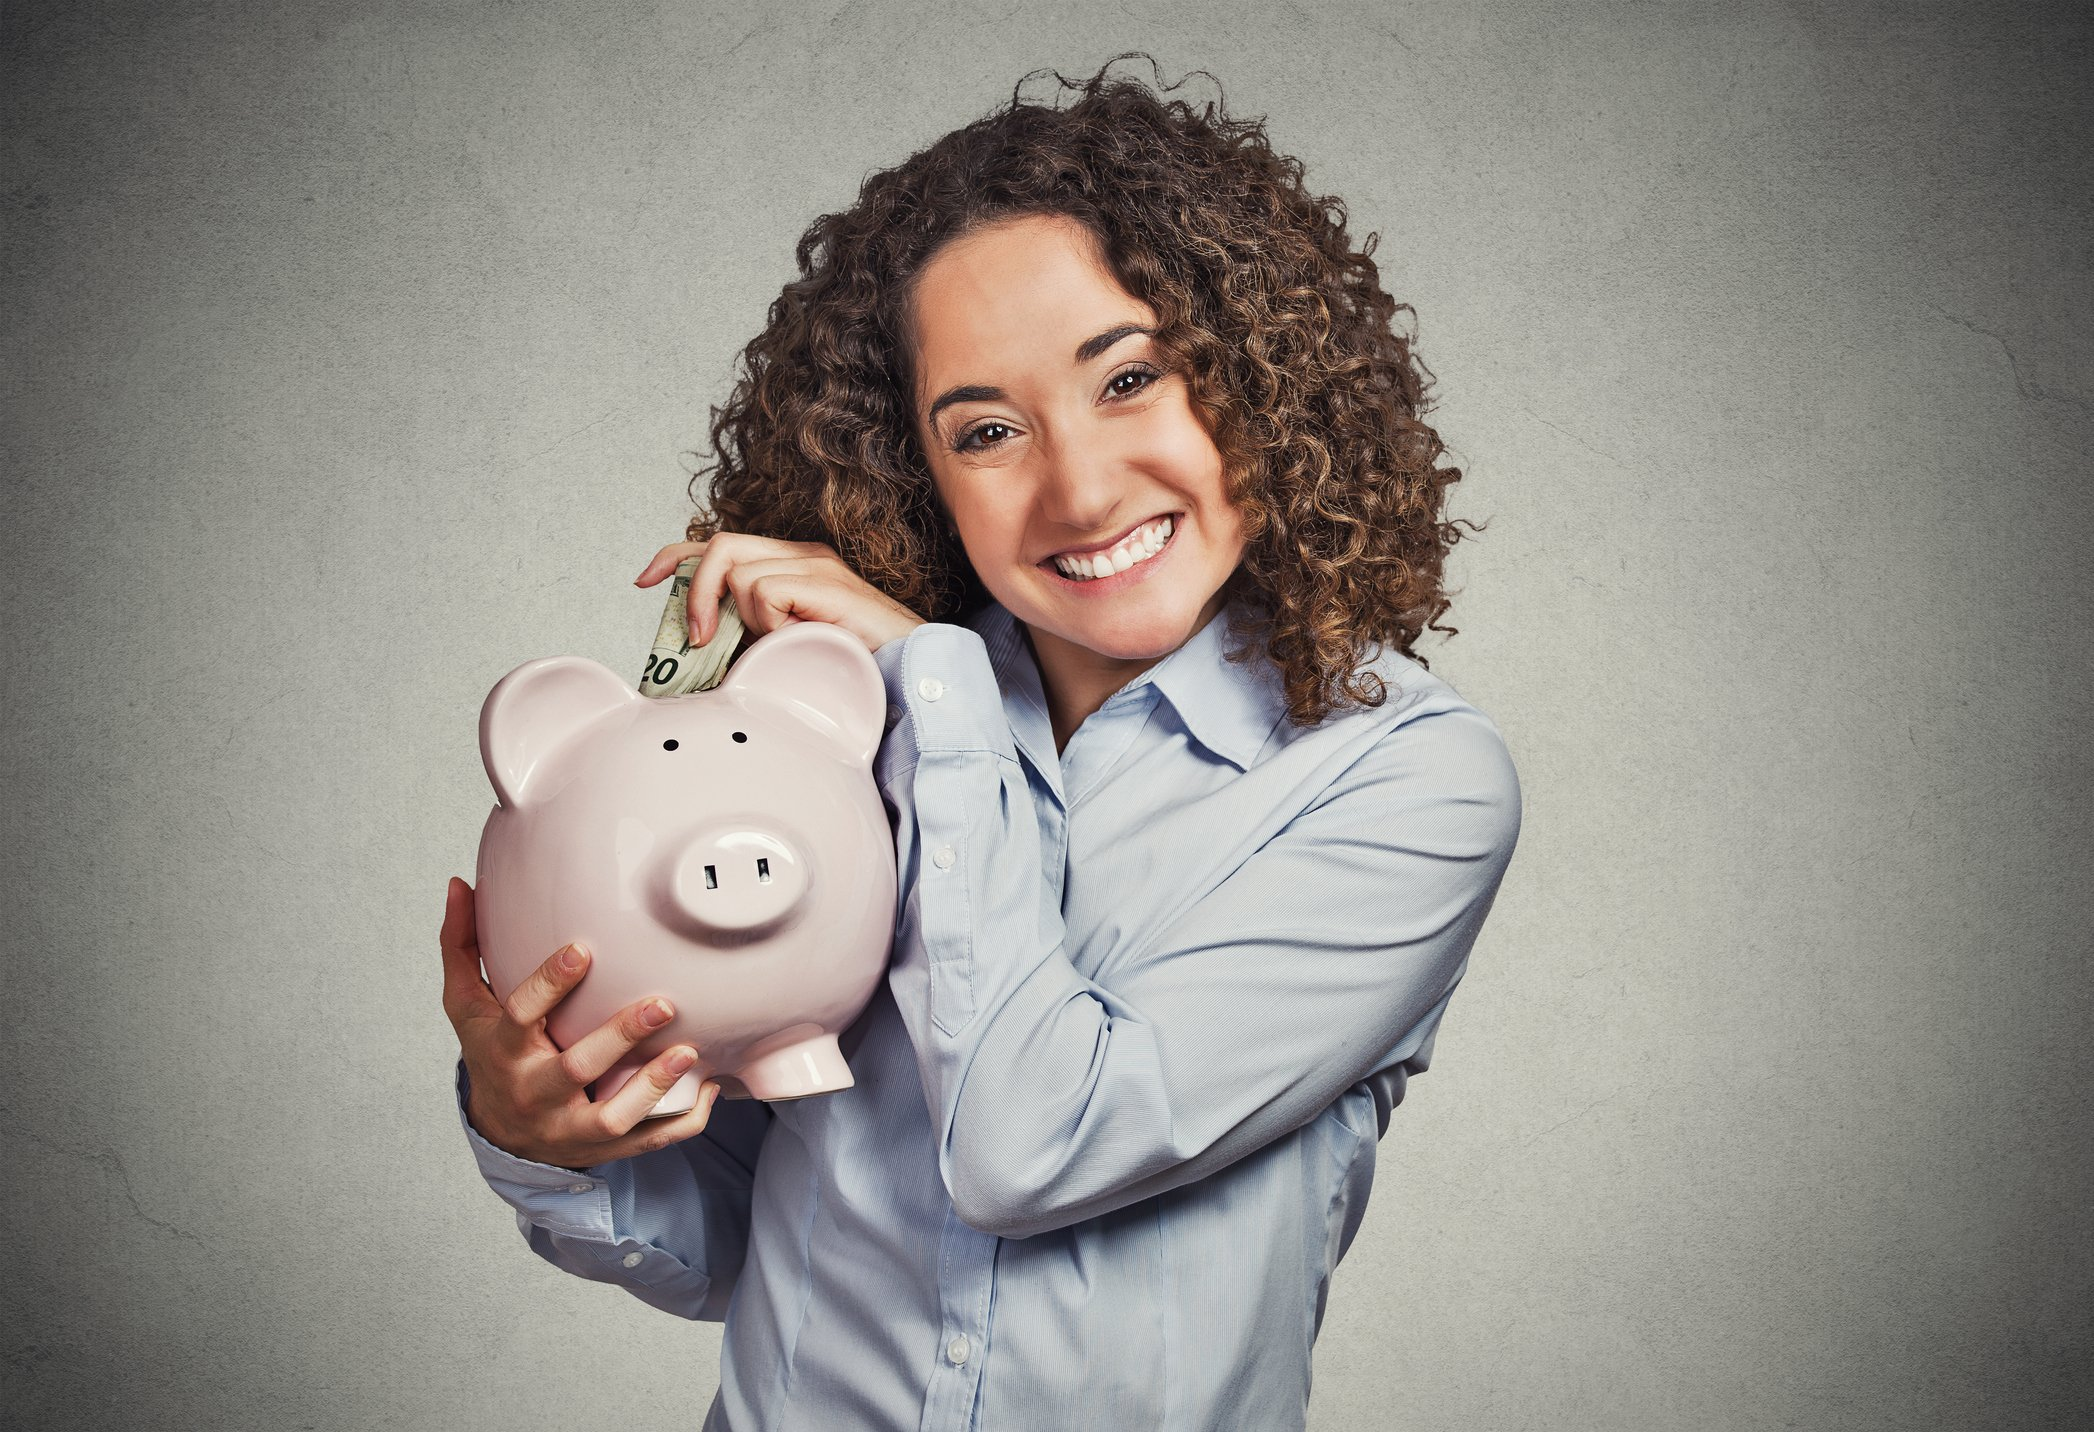 Woman holding a piggy bank while smiling